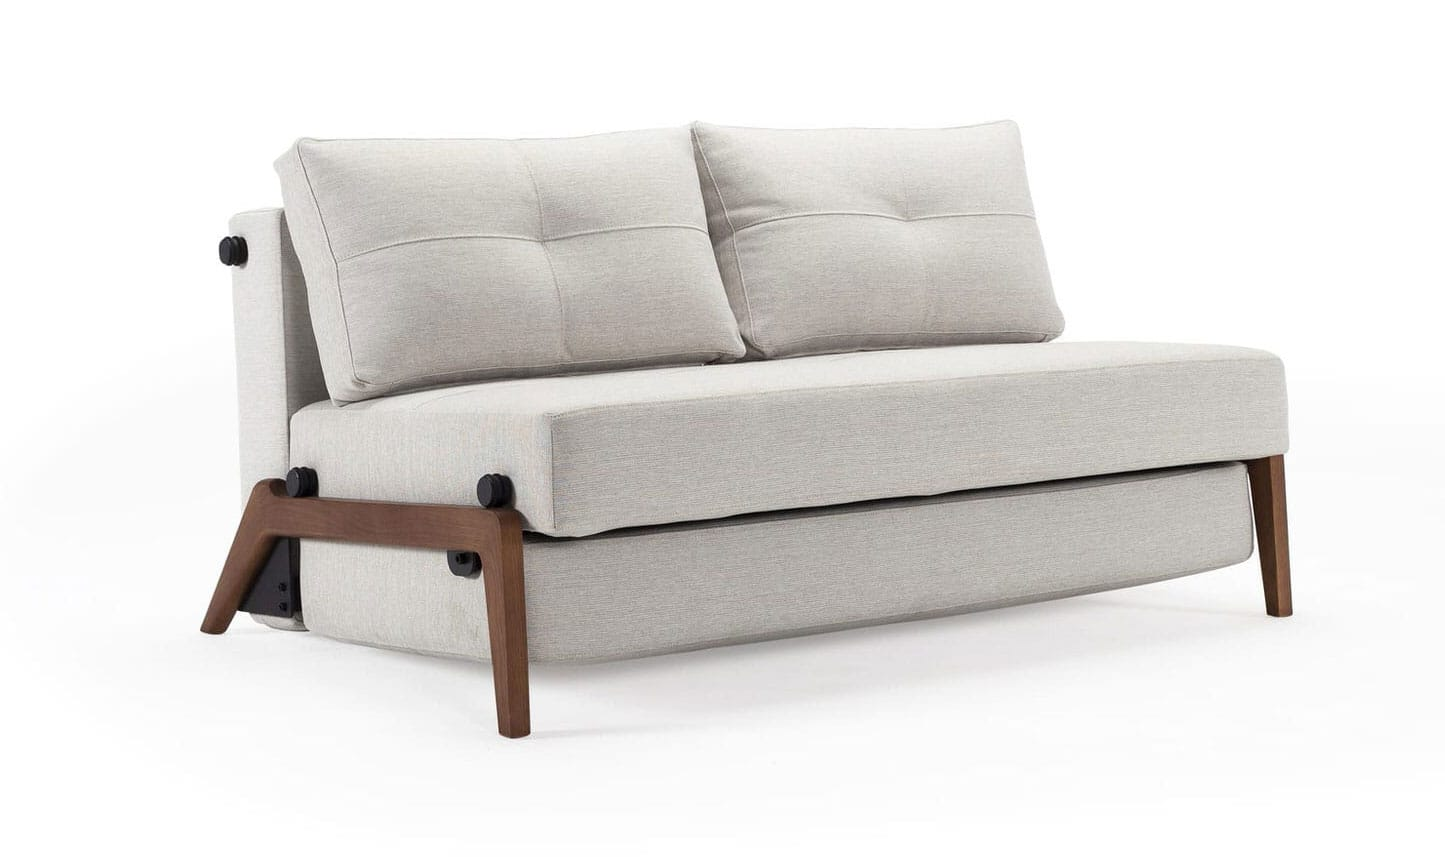 Cubed 02 Deluxe Sofa Full Size Mixed Dance Natural By Innovation